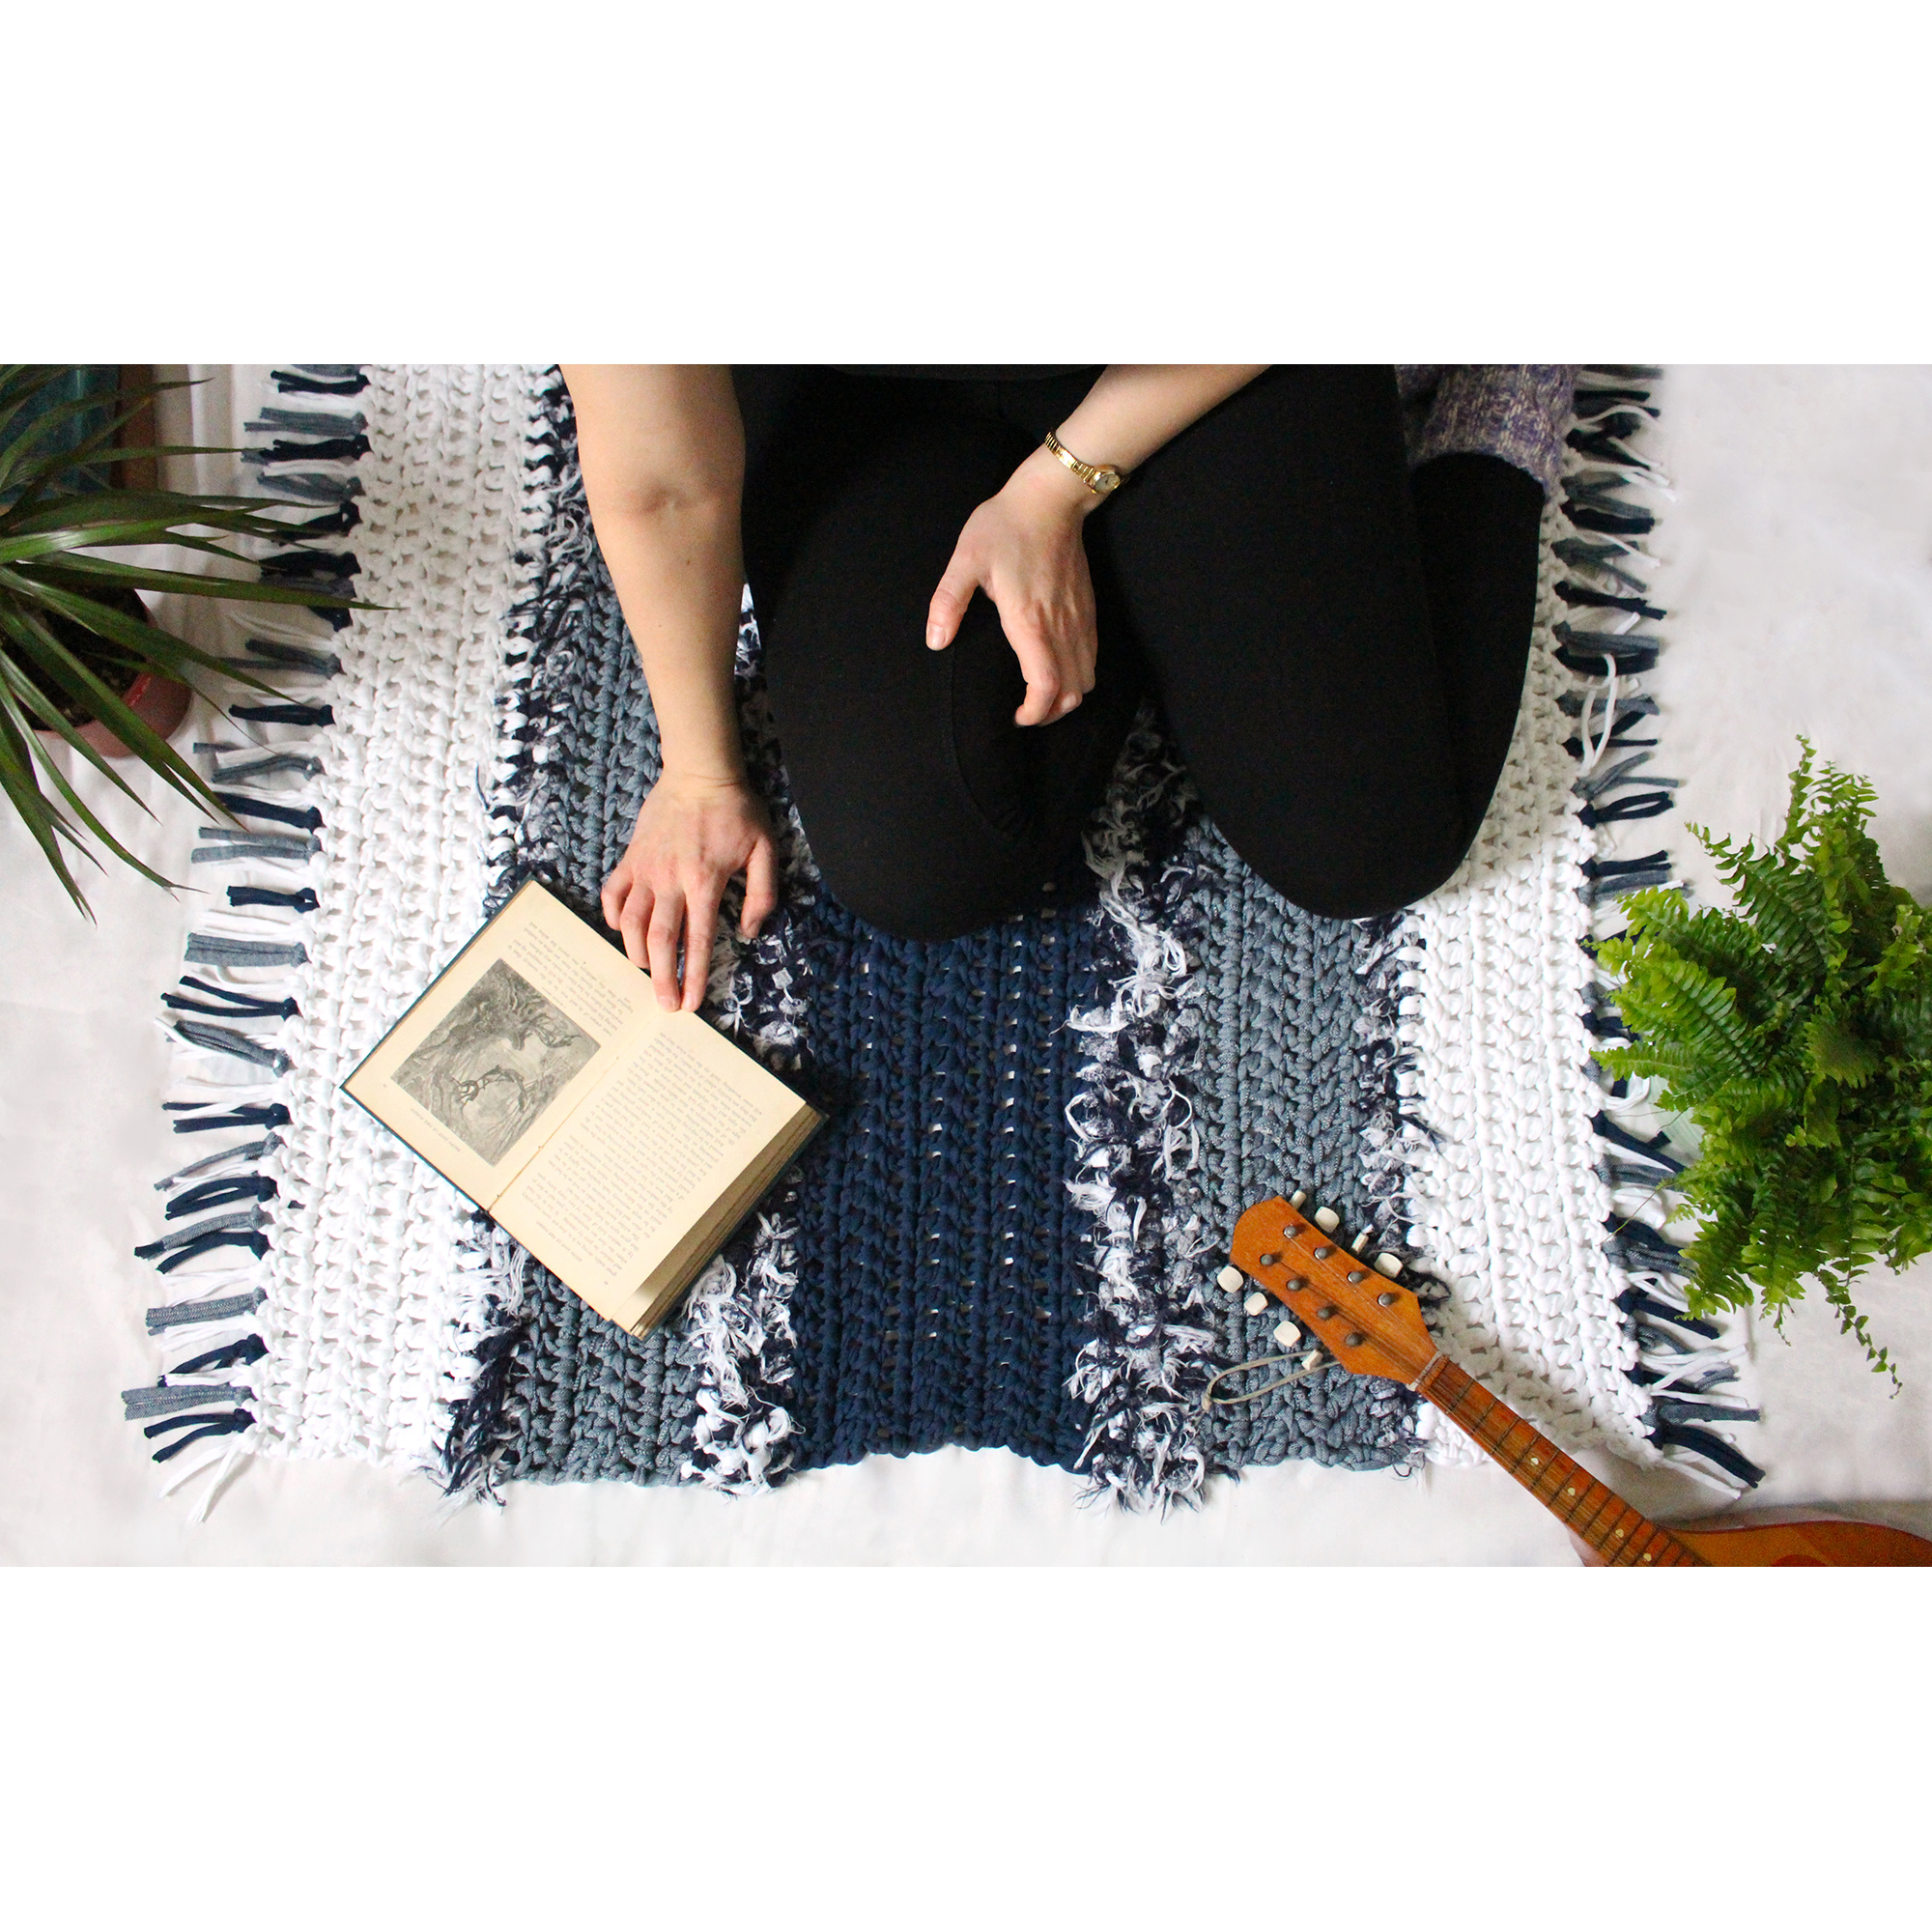 sustainable homeware - for a comfortable life